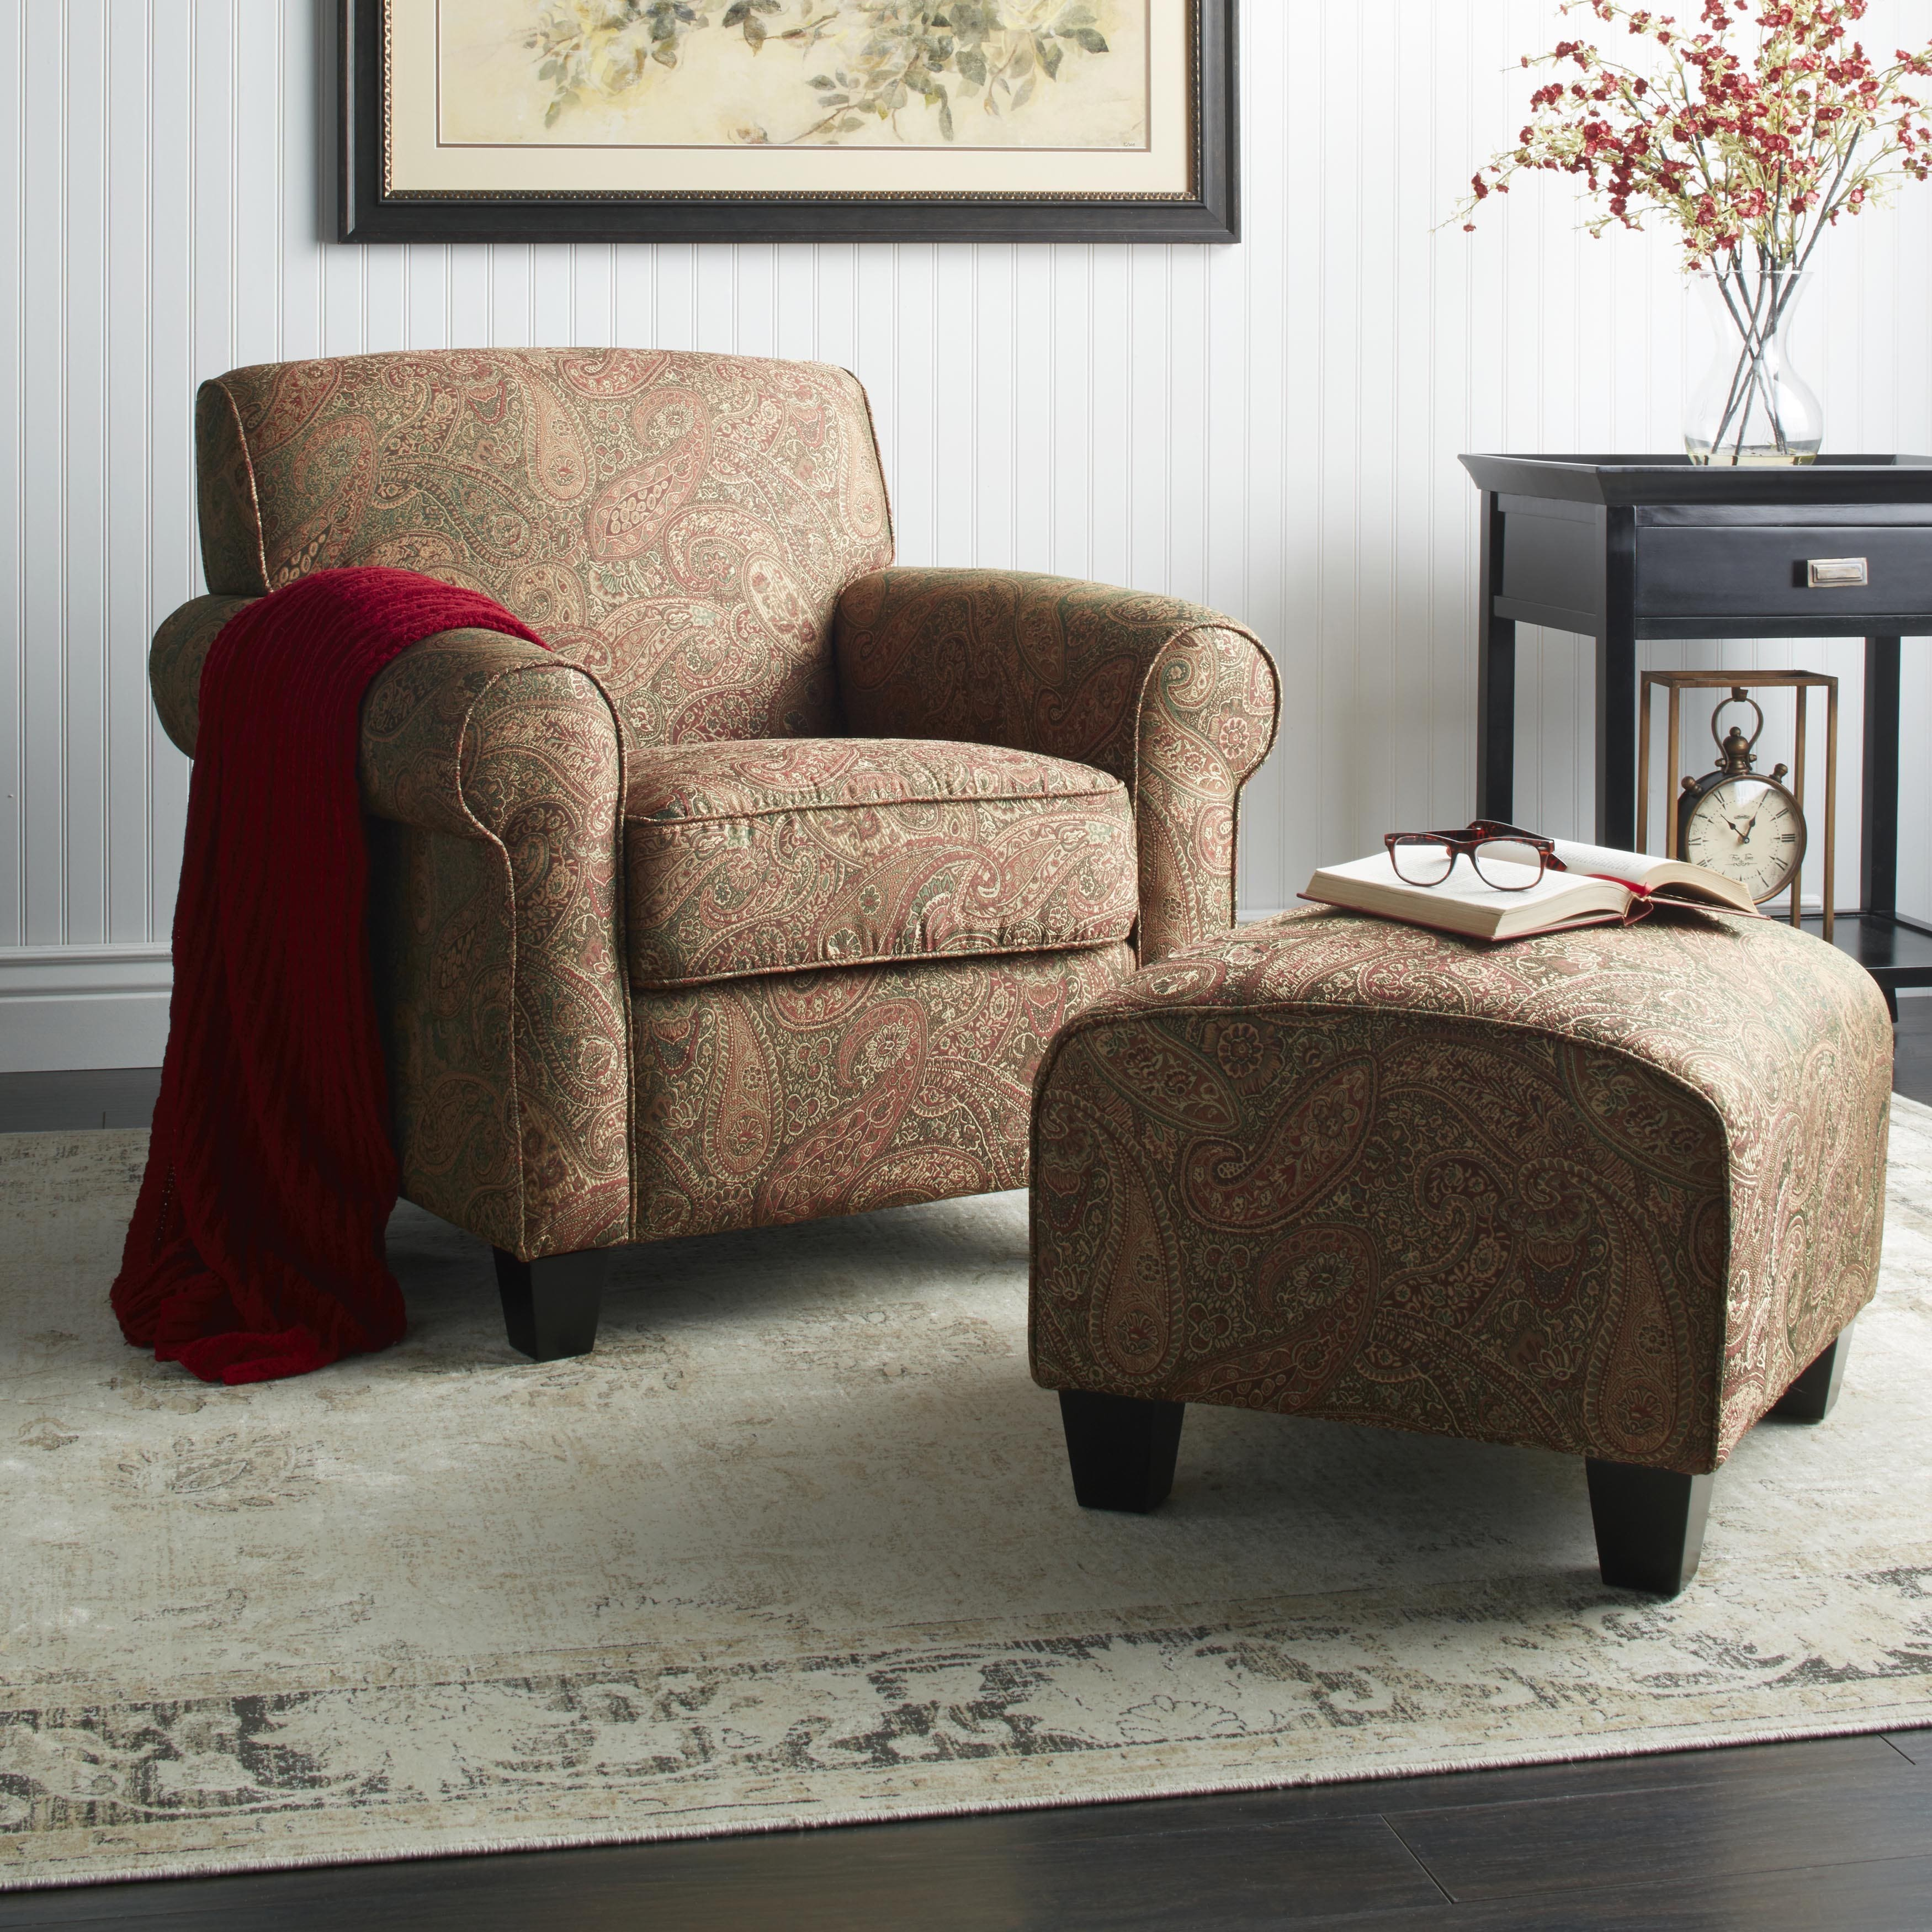 Best Deals On Living Room Furniture: Buy Living Room Chairs Online At Overstock.com